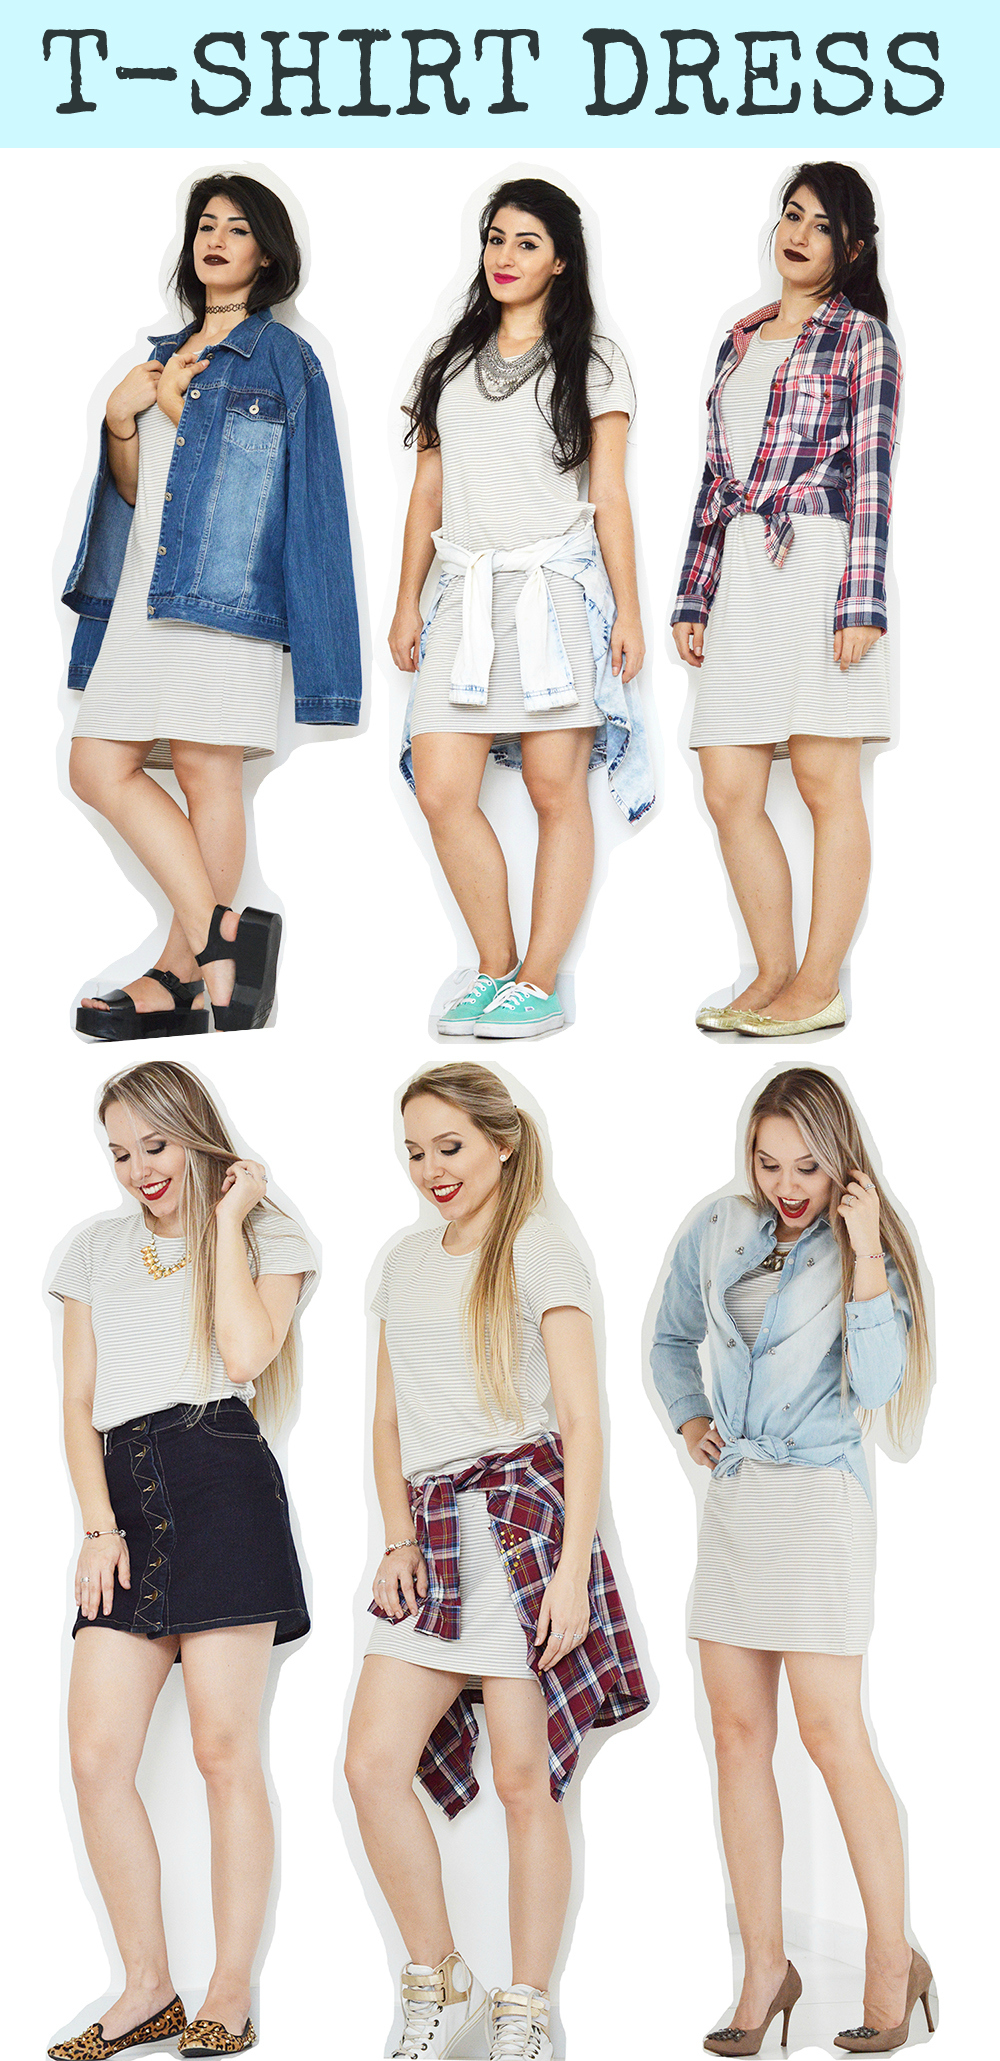 T-SHIRT DRESS LISTRADO 6 LOOKS NA LU